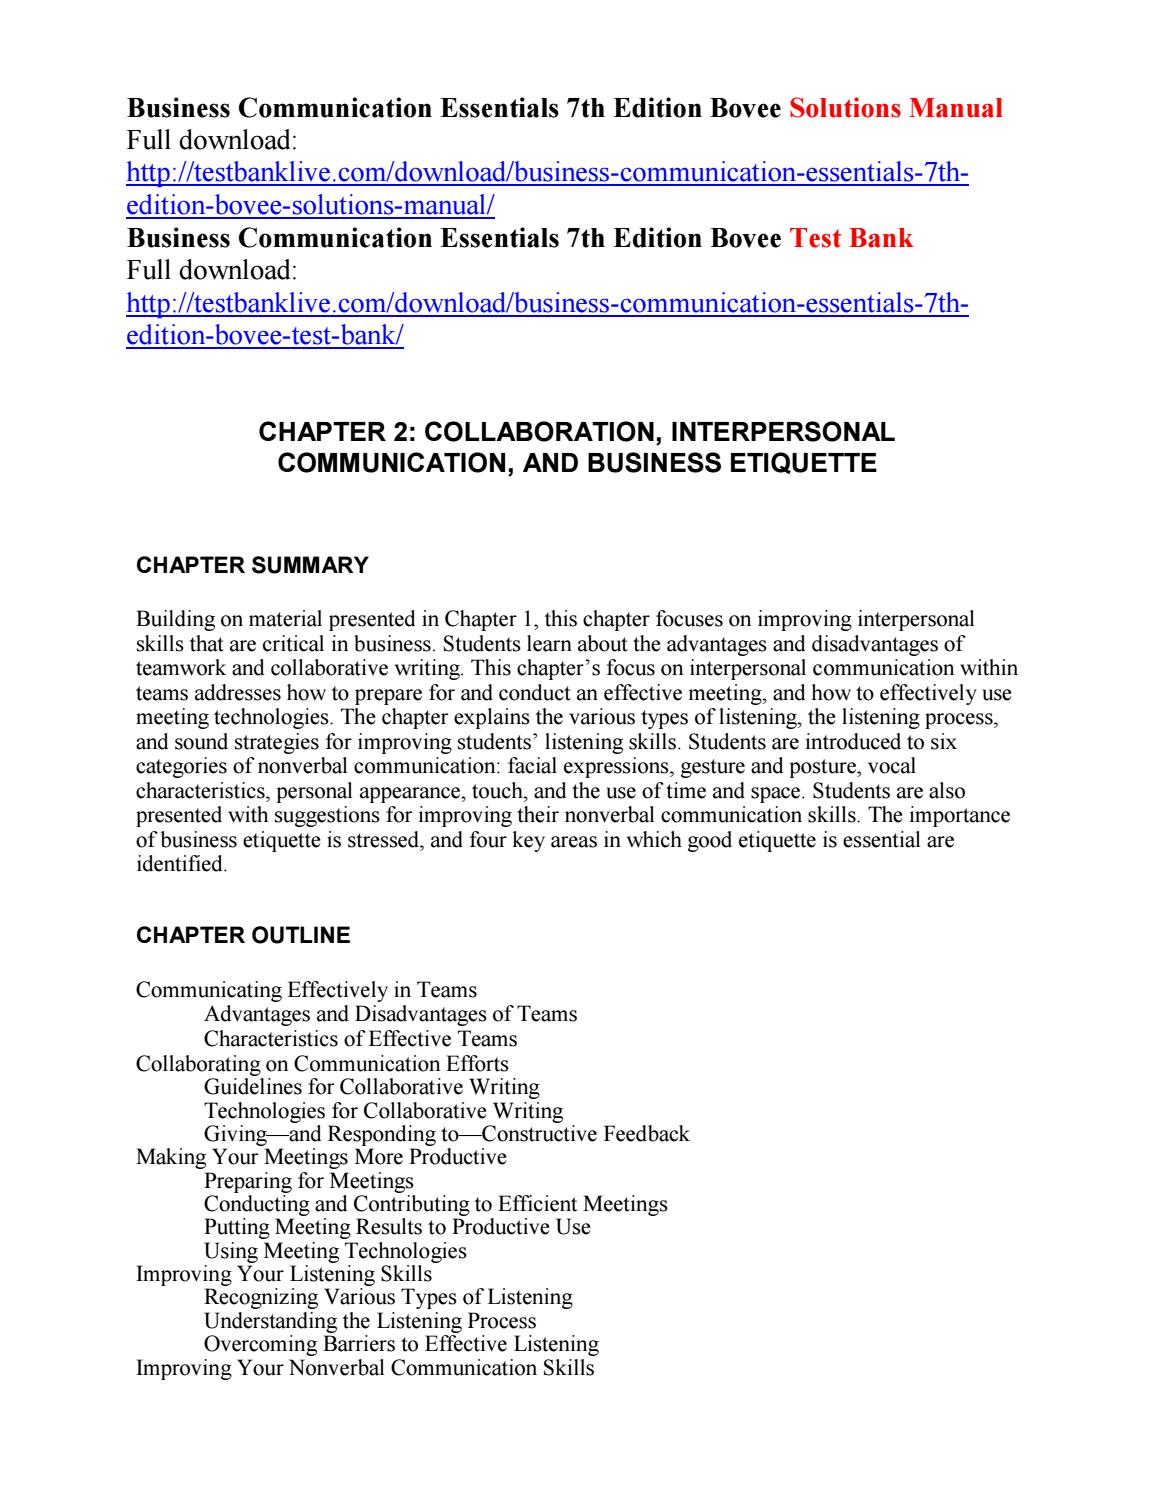 Business communication essentials 7th edition bovee solutions manual business communication essentials 7th edition bovee solutions manual by alladin111 issuu fandeluxe Images